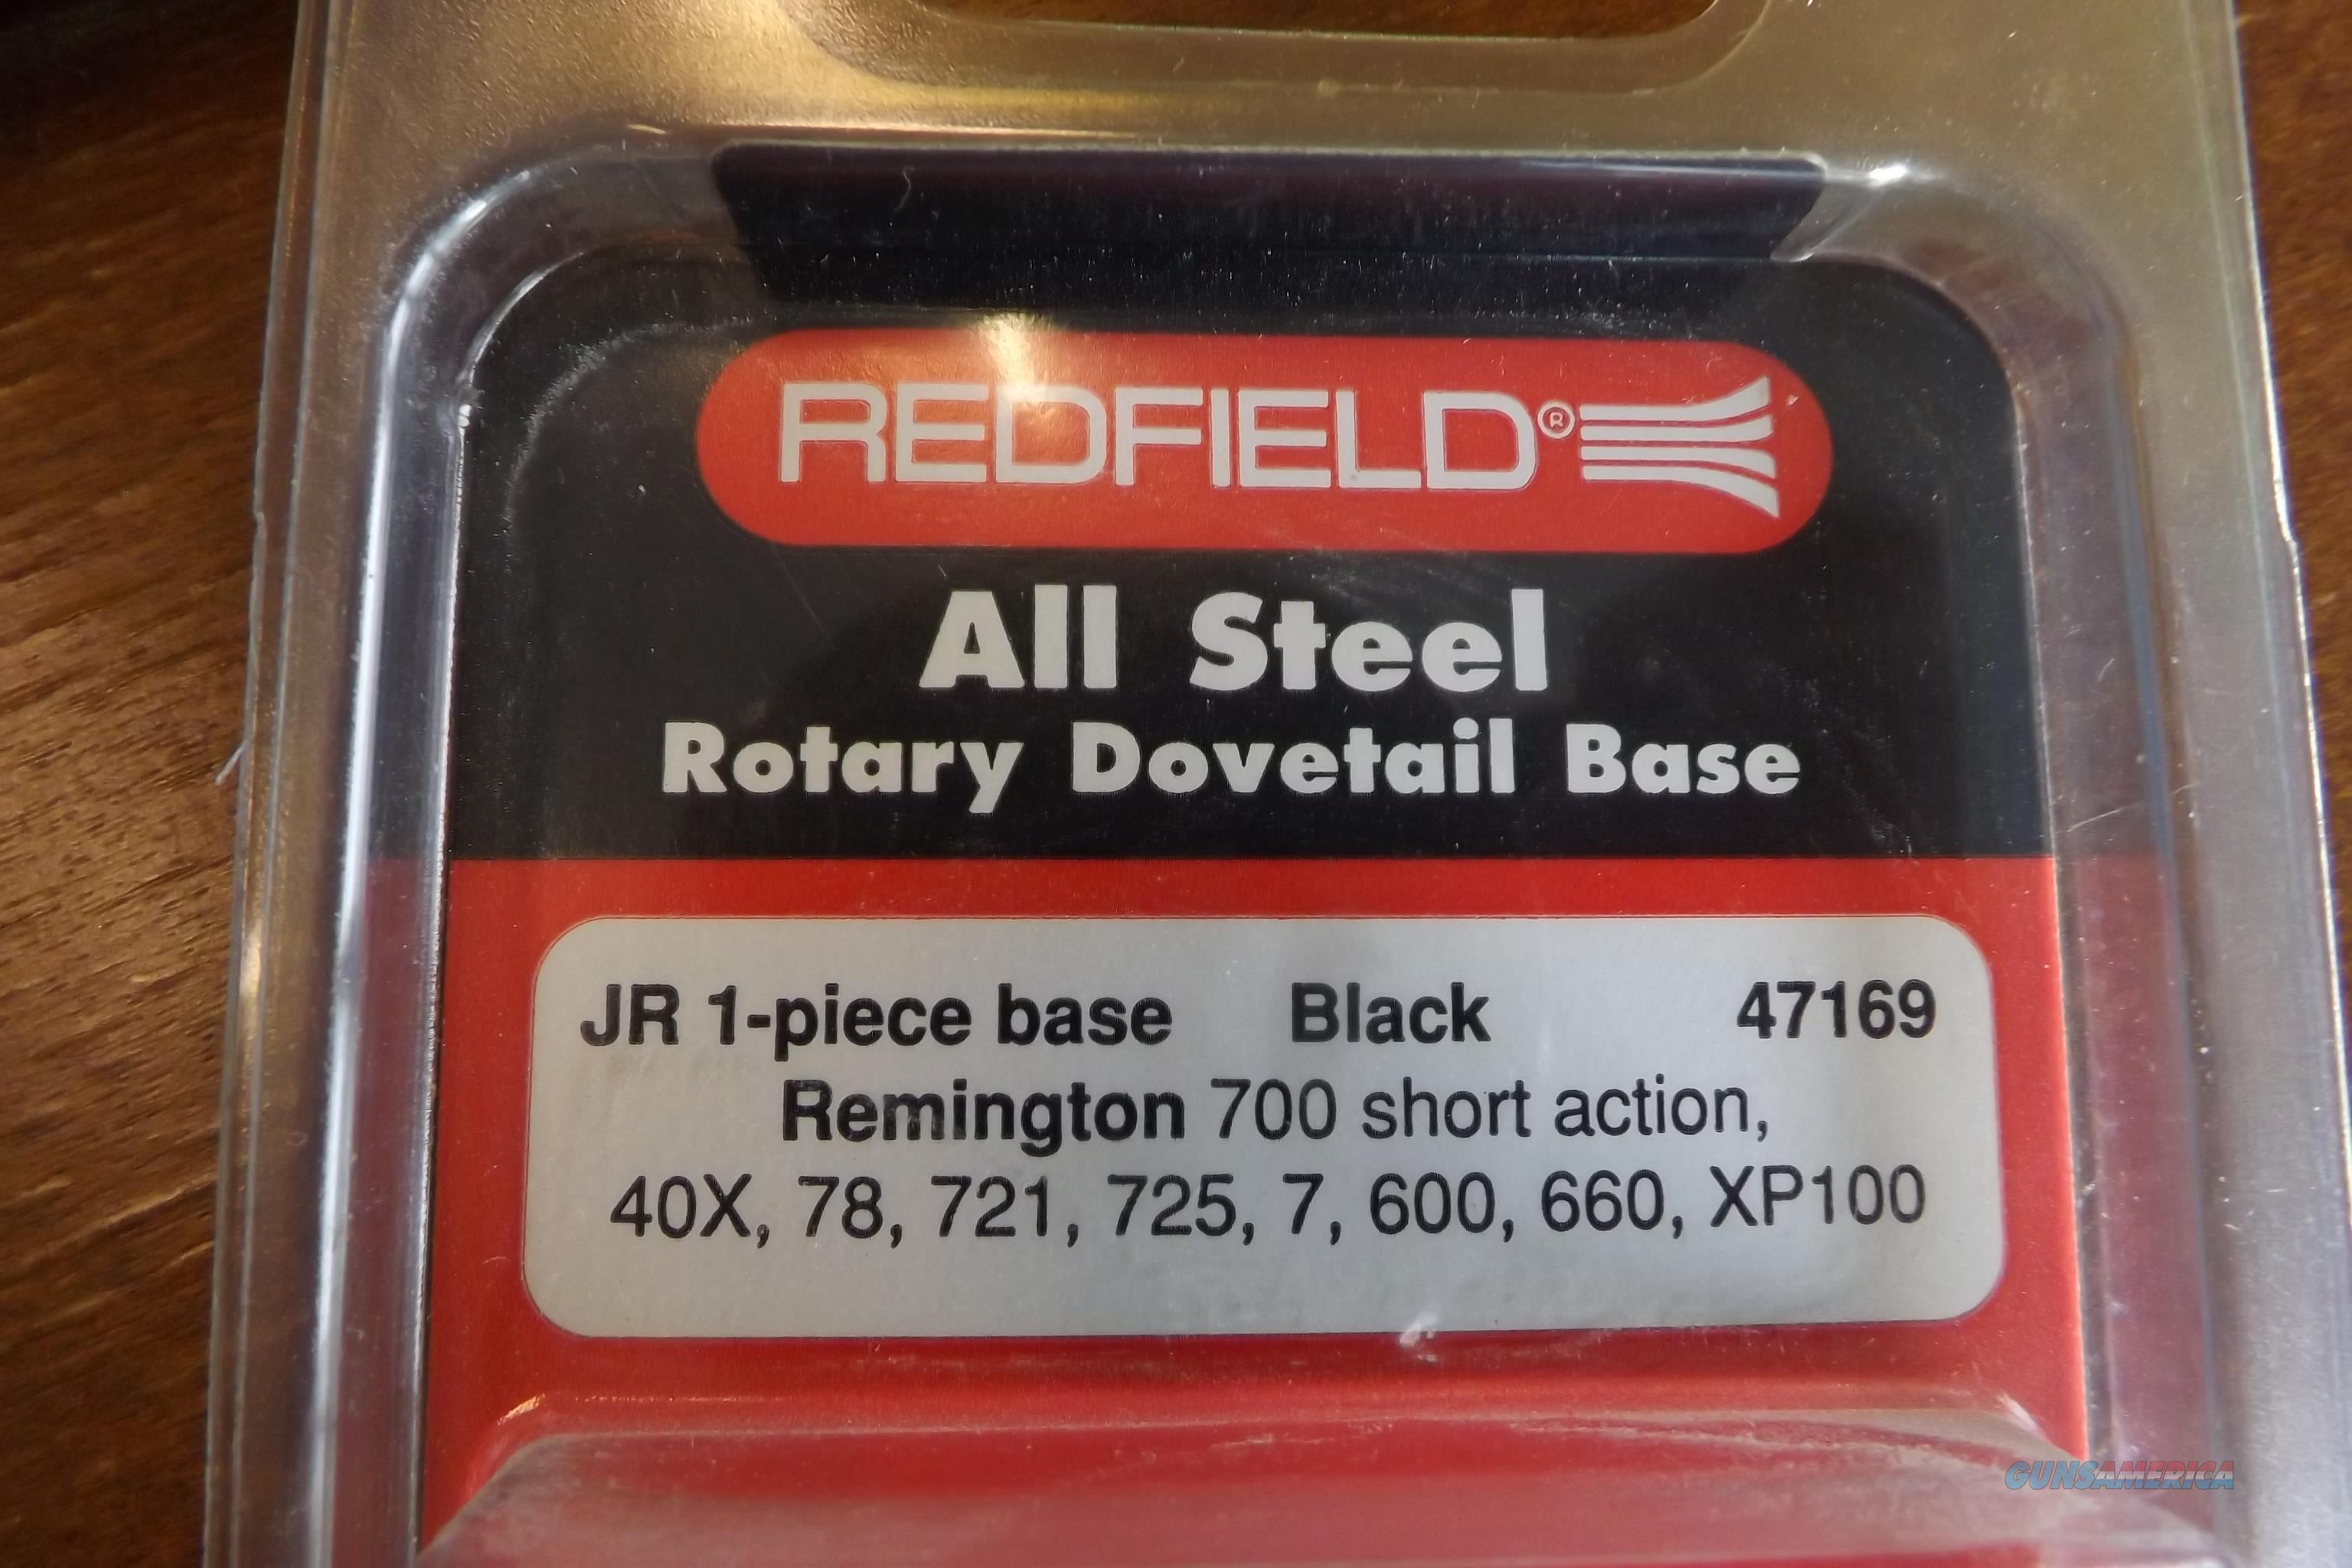 Redfield JR. Steel Rotary Dovetail Scope Mount Base Short Action Rem. 700, 721, 725,40X,78,7,600,660,XP100   Non-Guns > Scopes/Mounts/Rings & Optics > Mounts > Other